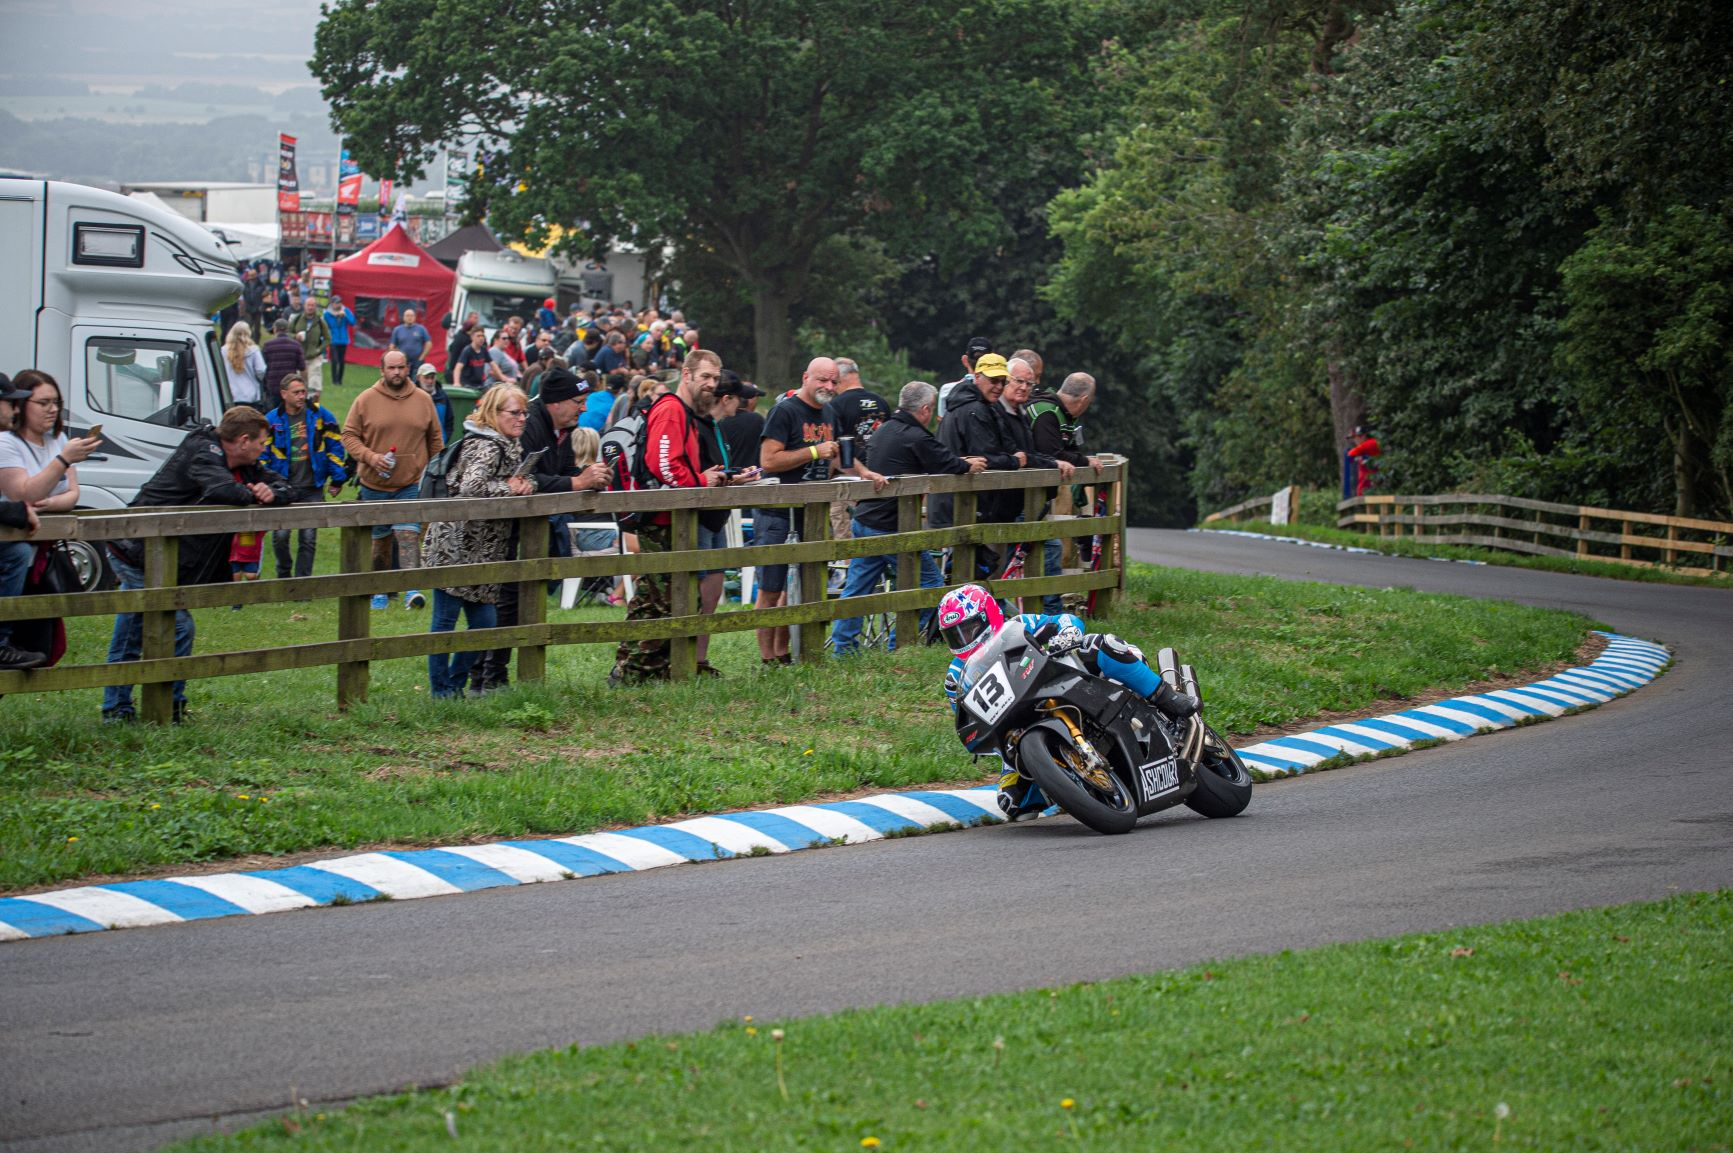 Xpress Coffee Becomes Latest Eminent Company To Support 2021 Oliver's Mount Events